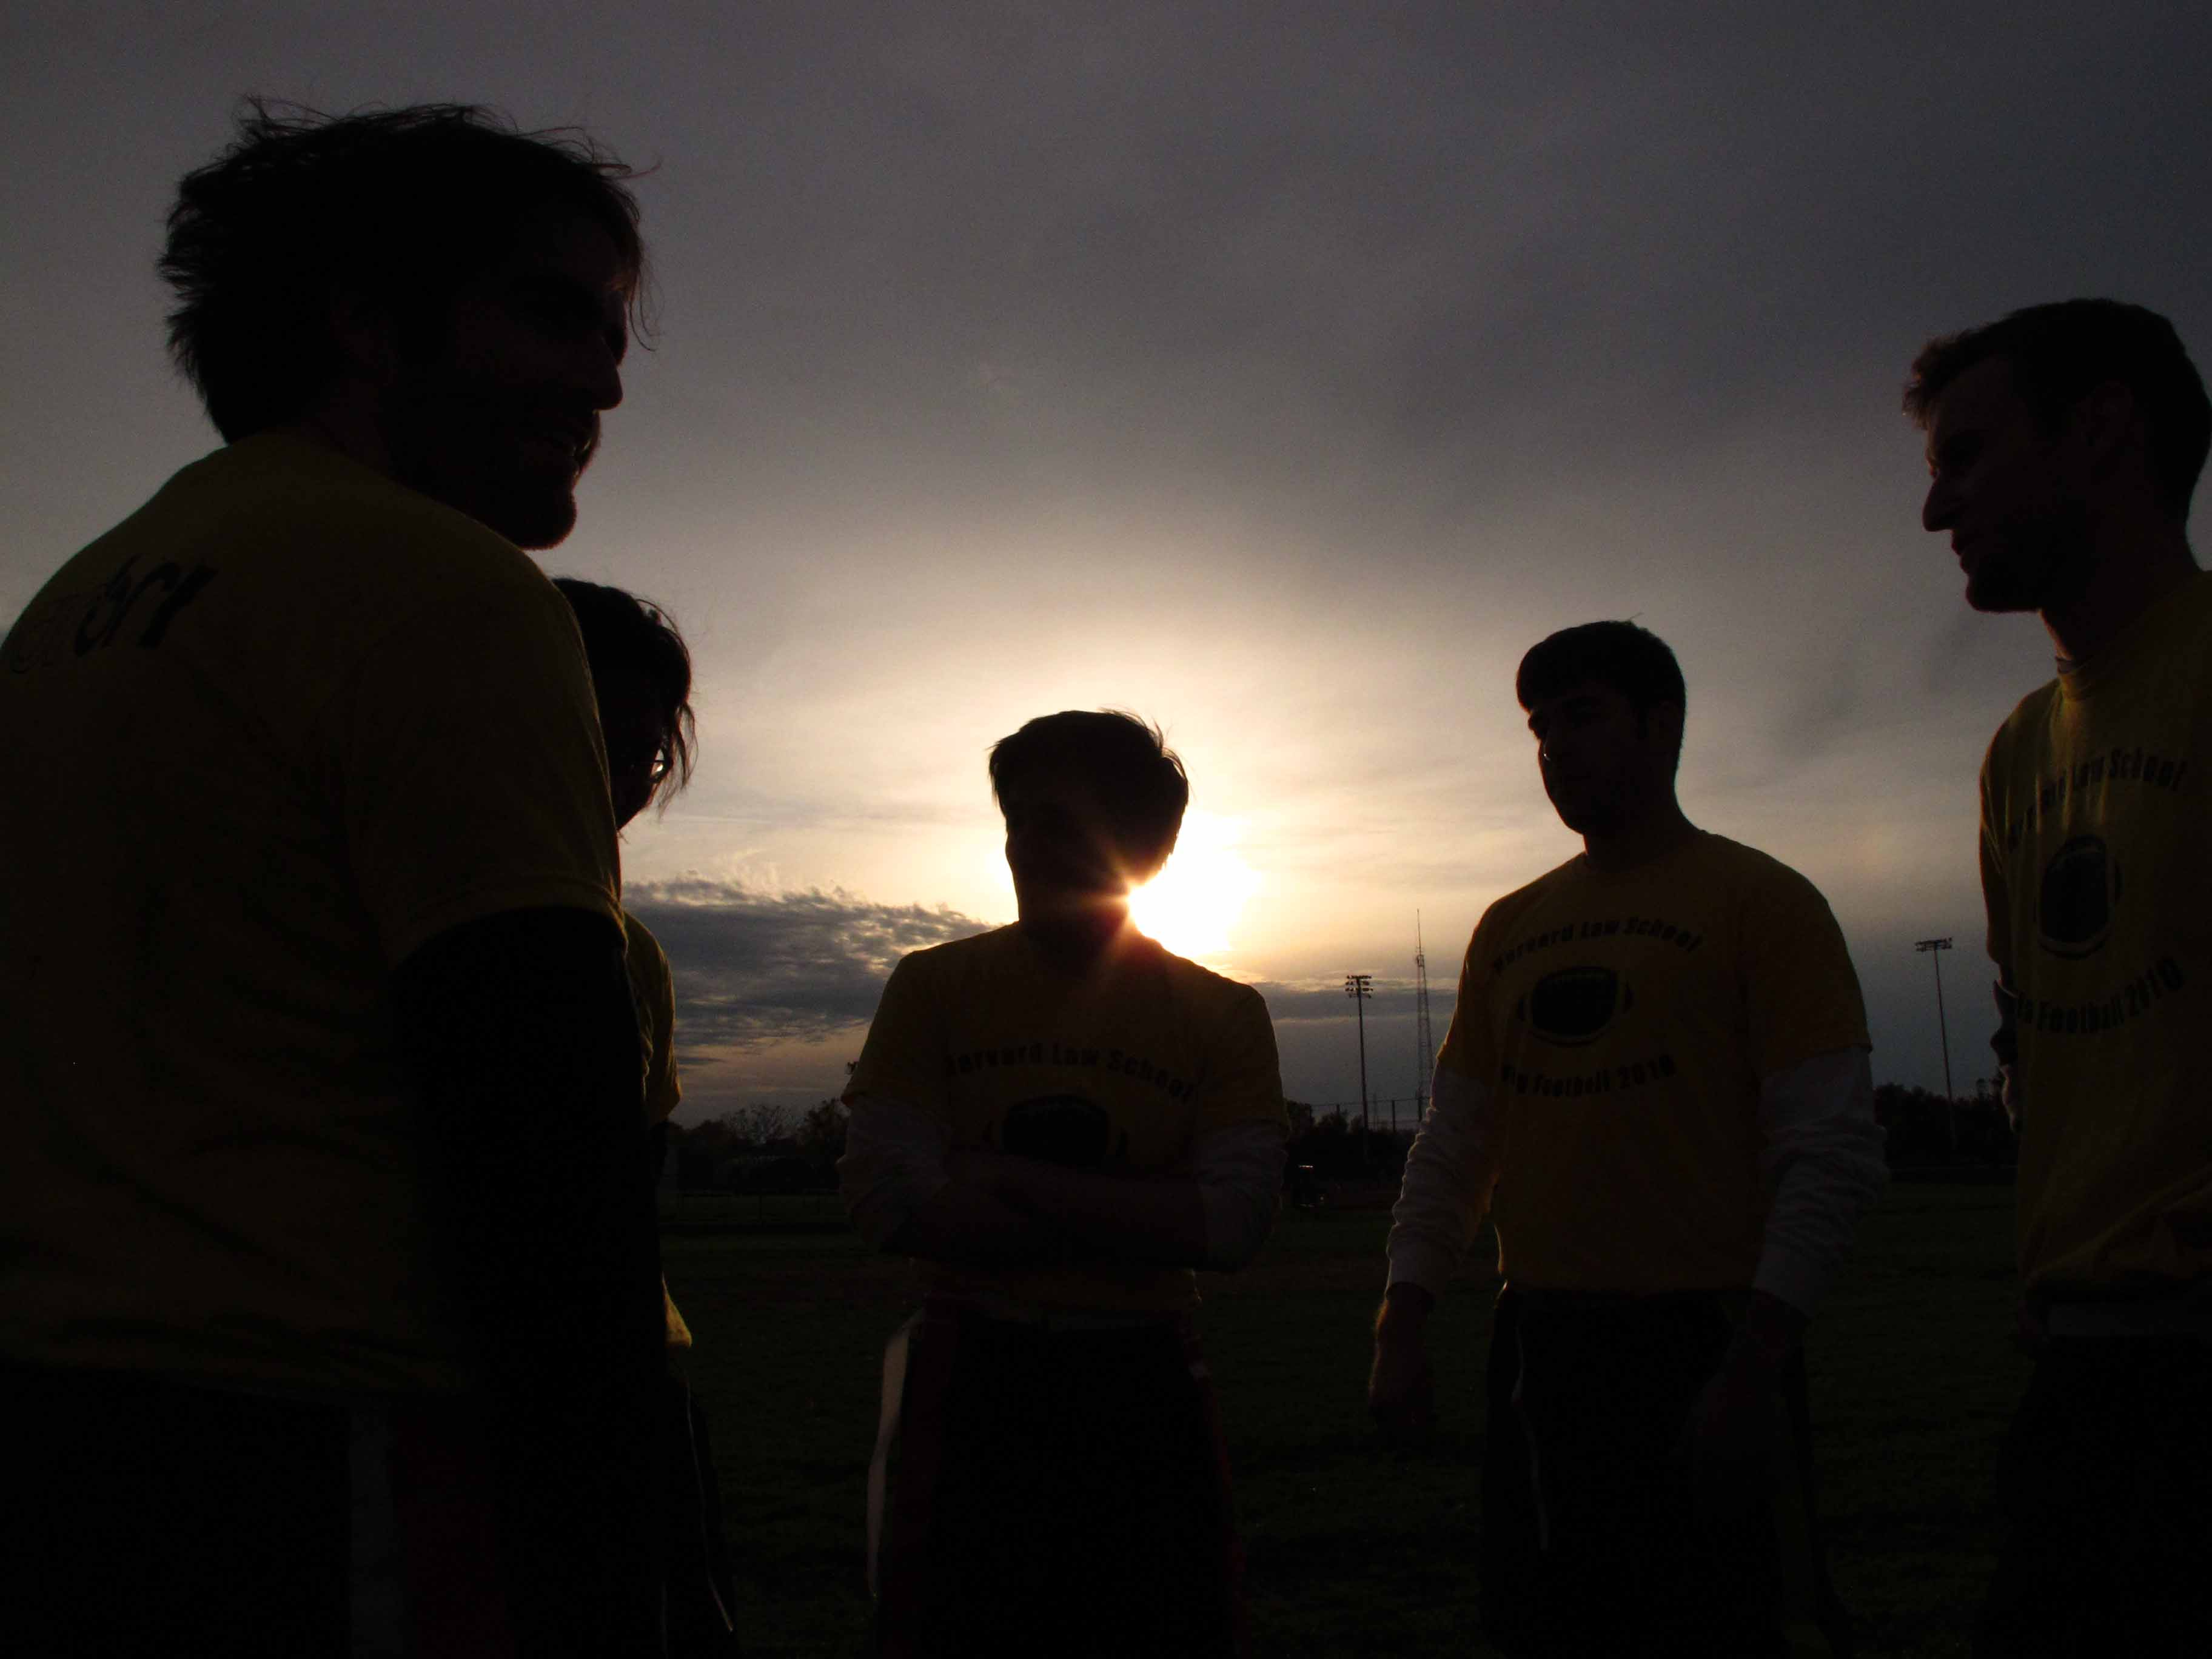 Against a setting sun, five people form a circle, visible only as silhouettes